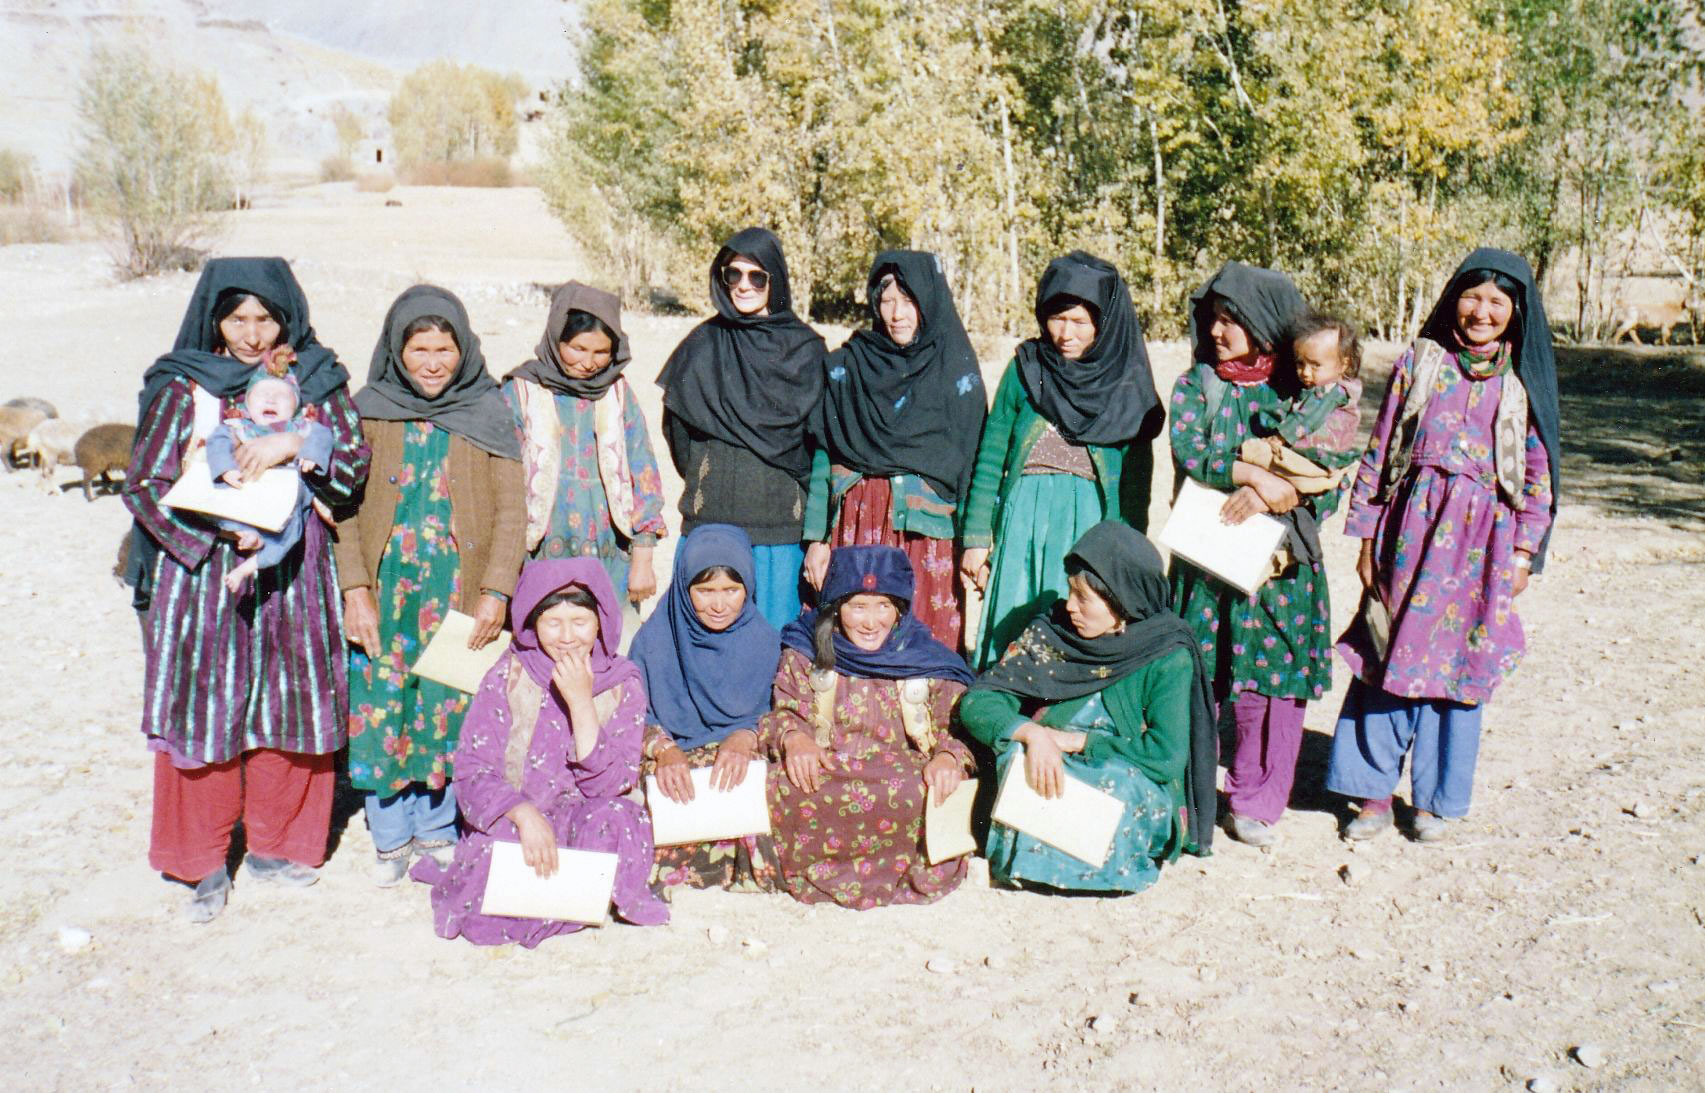 Photograph shows a a group of Afghan women with certificates of completion of a healthcare course.